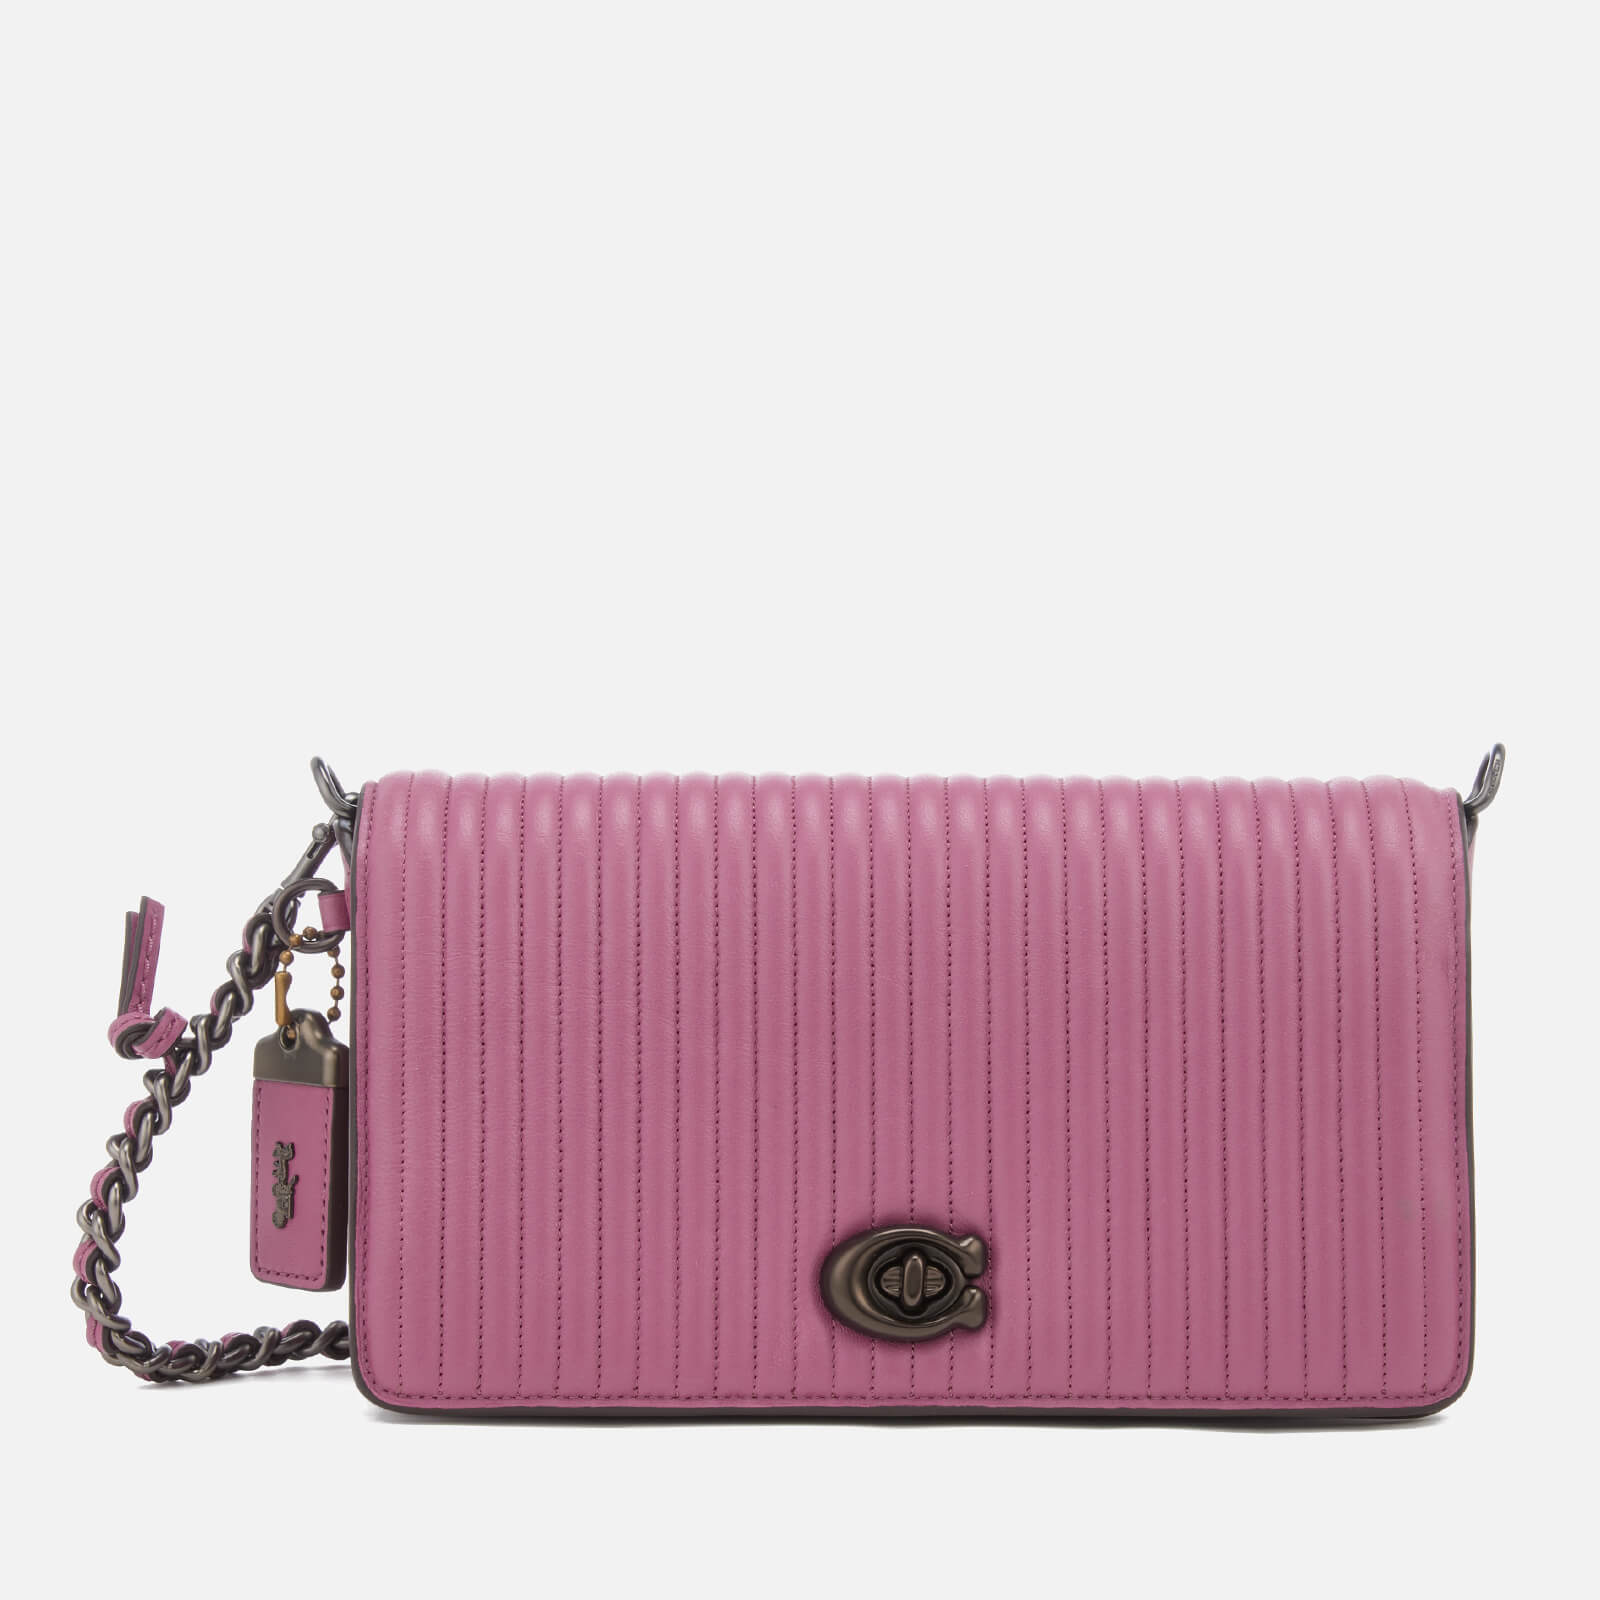 69b6668d91cc Coach 1941 Women s Dinky Cross Body Bag - Primrose - Free UK Delivery over  £50